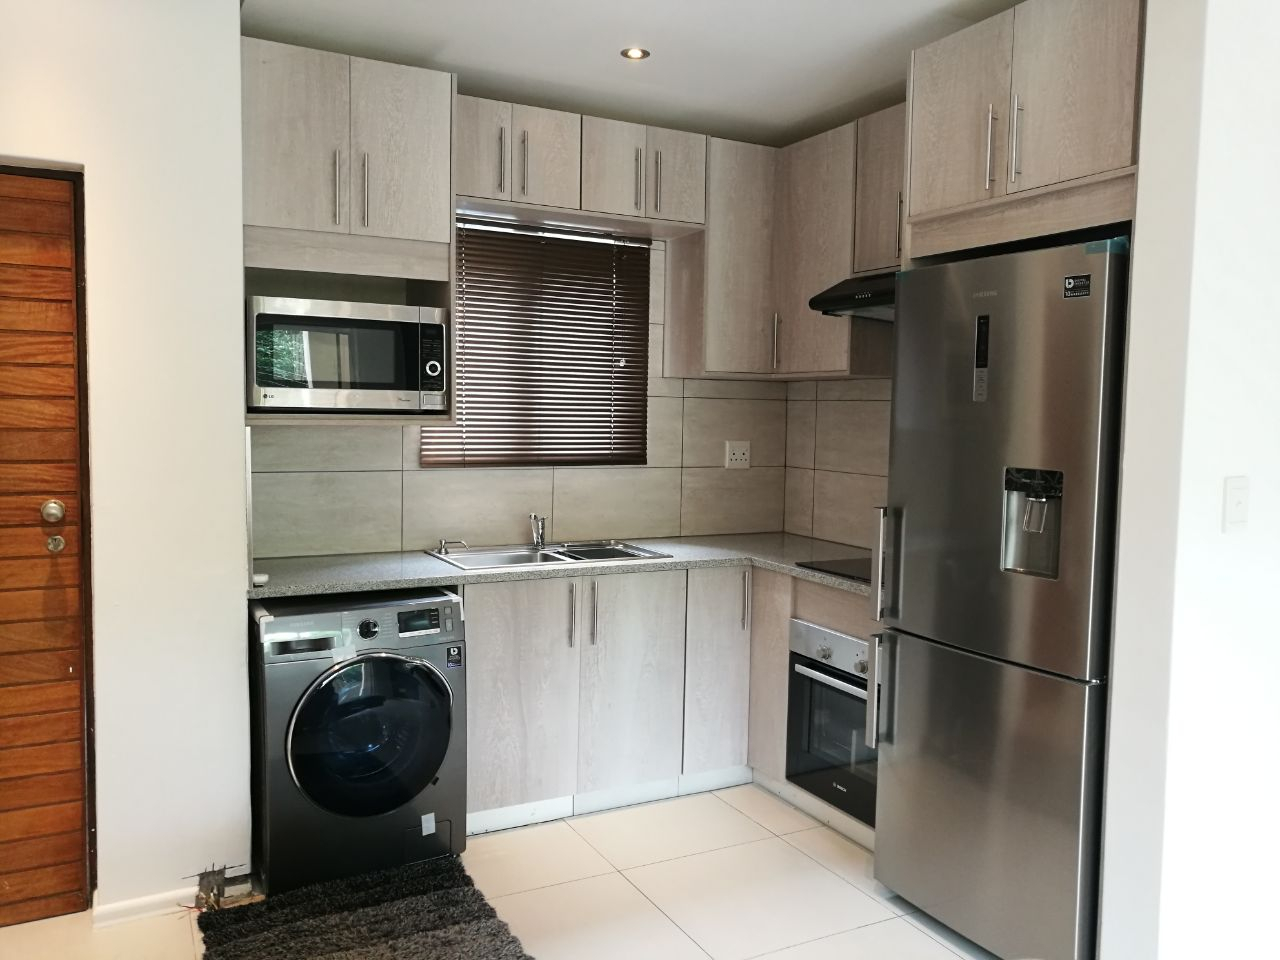 2 BedroomApartment For Sale In Sheffield